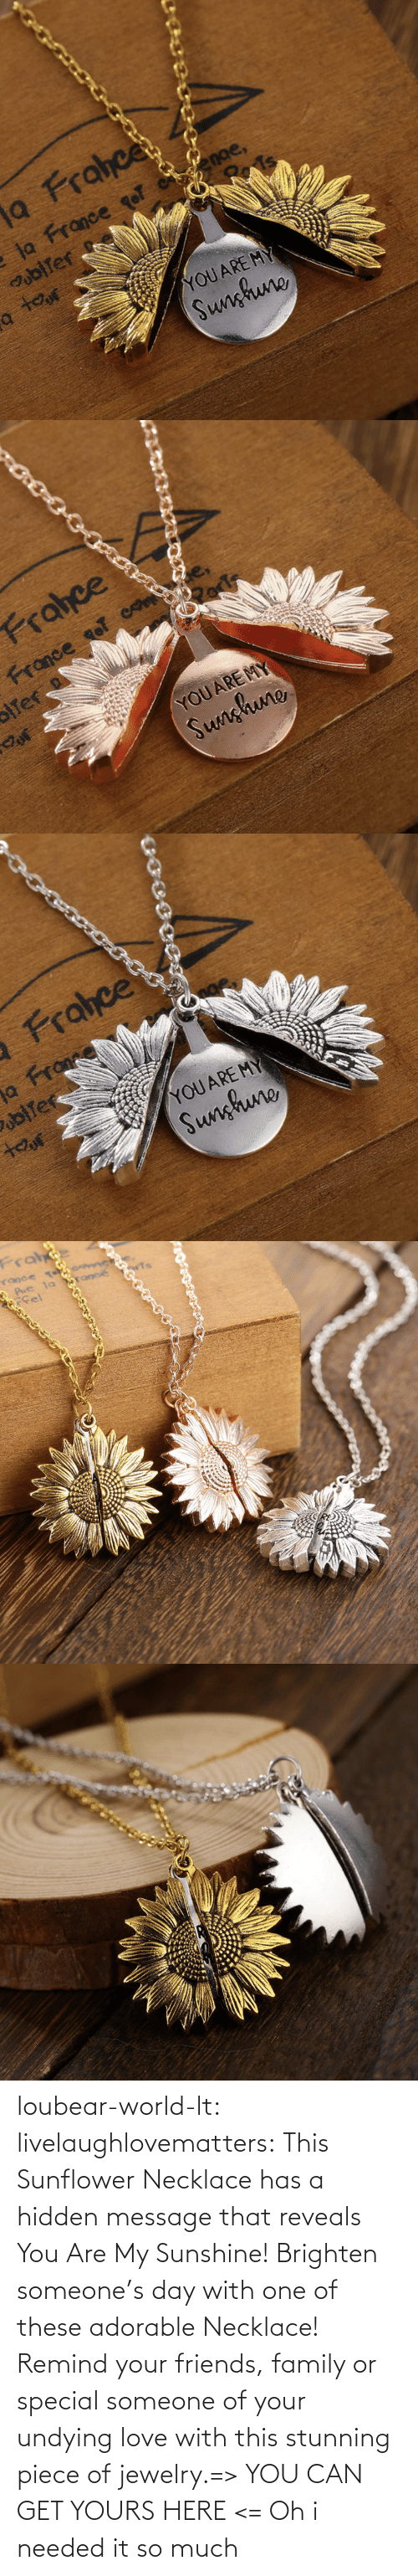 yours: loubear-world-lt:  livelaughlovematters:  This Sunflower Necklace has a hidden message that reveals You Are My Sunshine! Brighten someone's day with one of these adorable Necklace! Remind your friends, family or special someone of your undying love with this stunning piece of jewelry.=> YOU CAN GET YOURS HERE <=   Oh i needed it so much